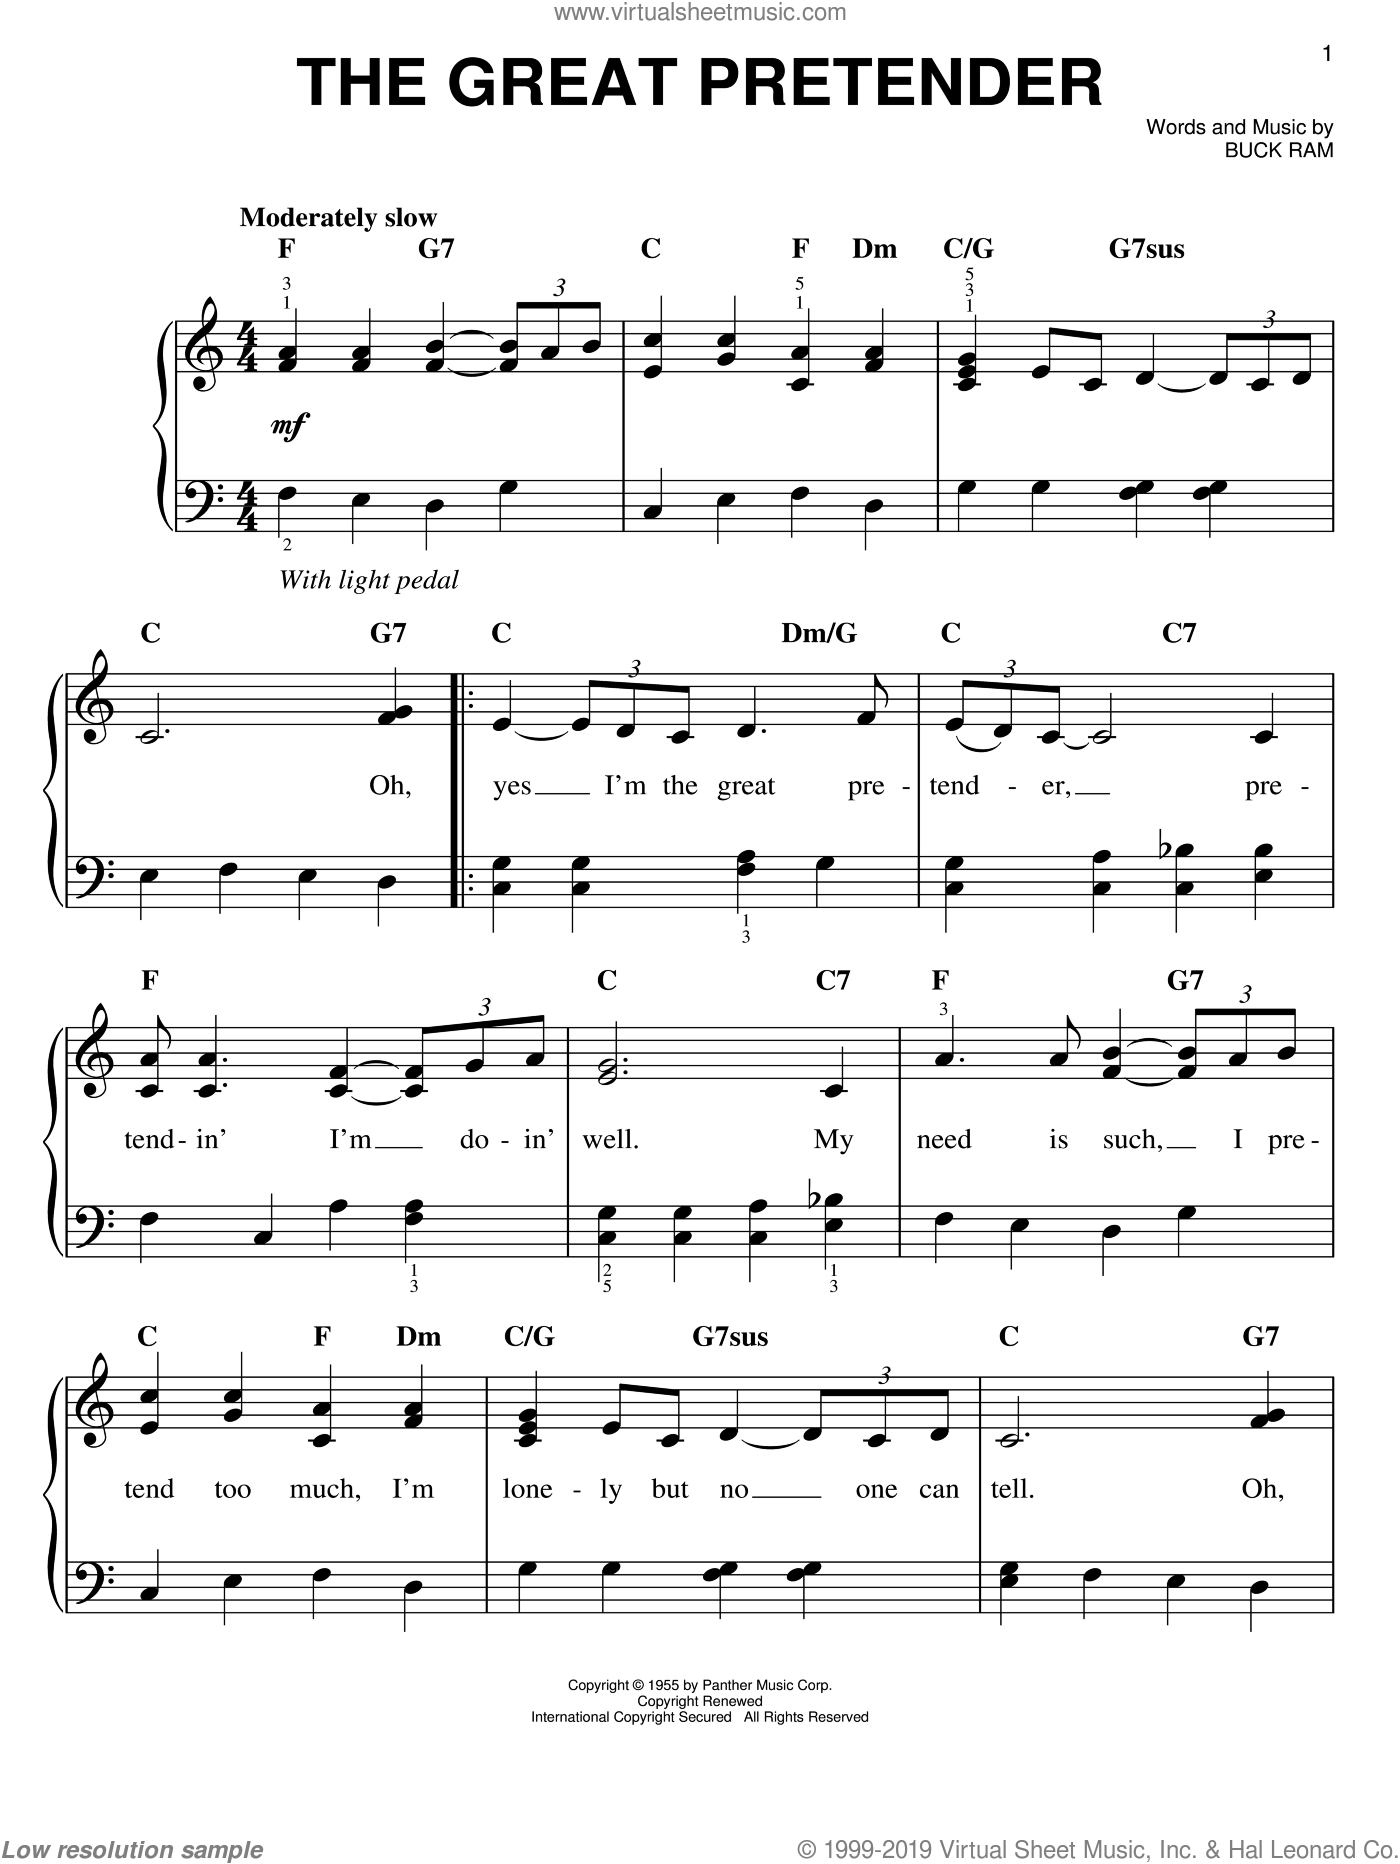 The Great Pretender sheet music for piano solo by Buck Ram